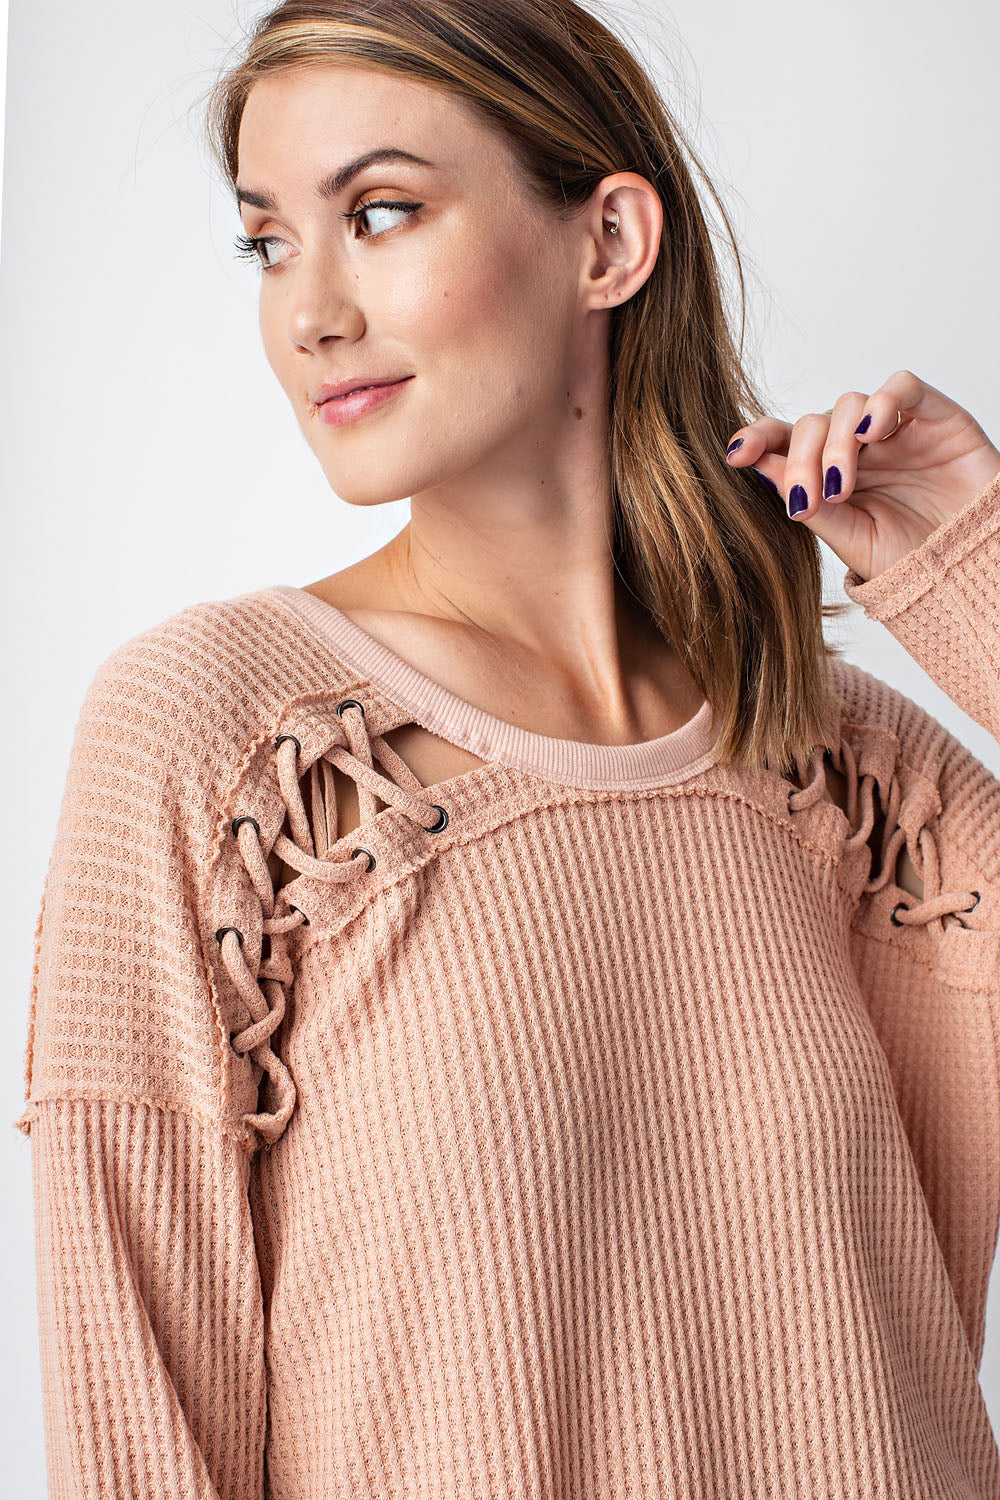 Crisscross lacing accent sweater (2 colors)